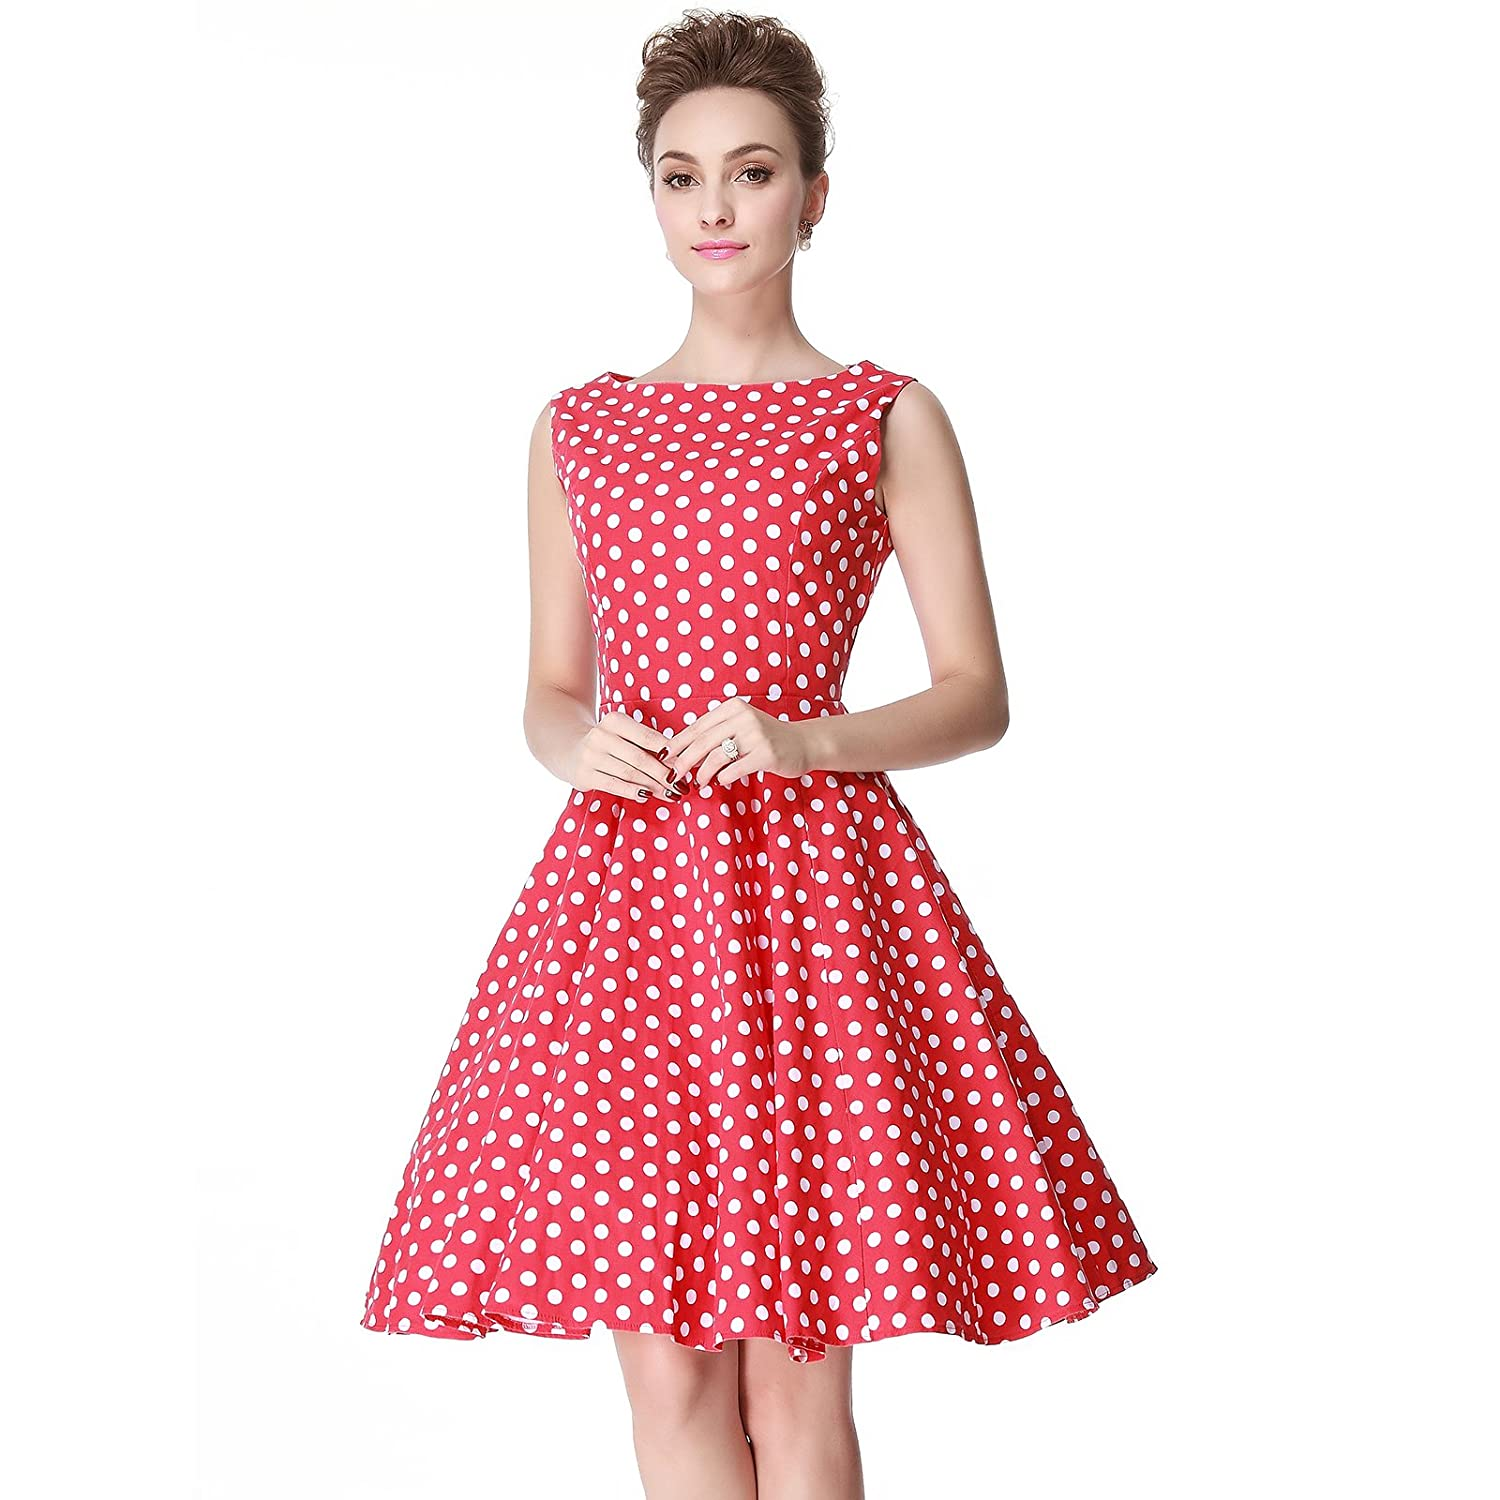 Vintage Inspired Halloween Costumes Heroecol Womens Vintage 1950s Dresses Boat Neck Sleeveless 50s 60s Polka Dot Style Retro Swing Cotton Dress $24.99 AT vintagedancer.com